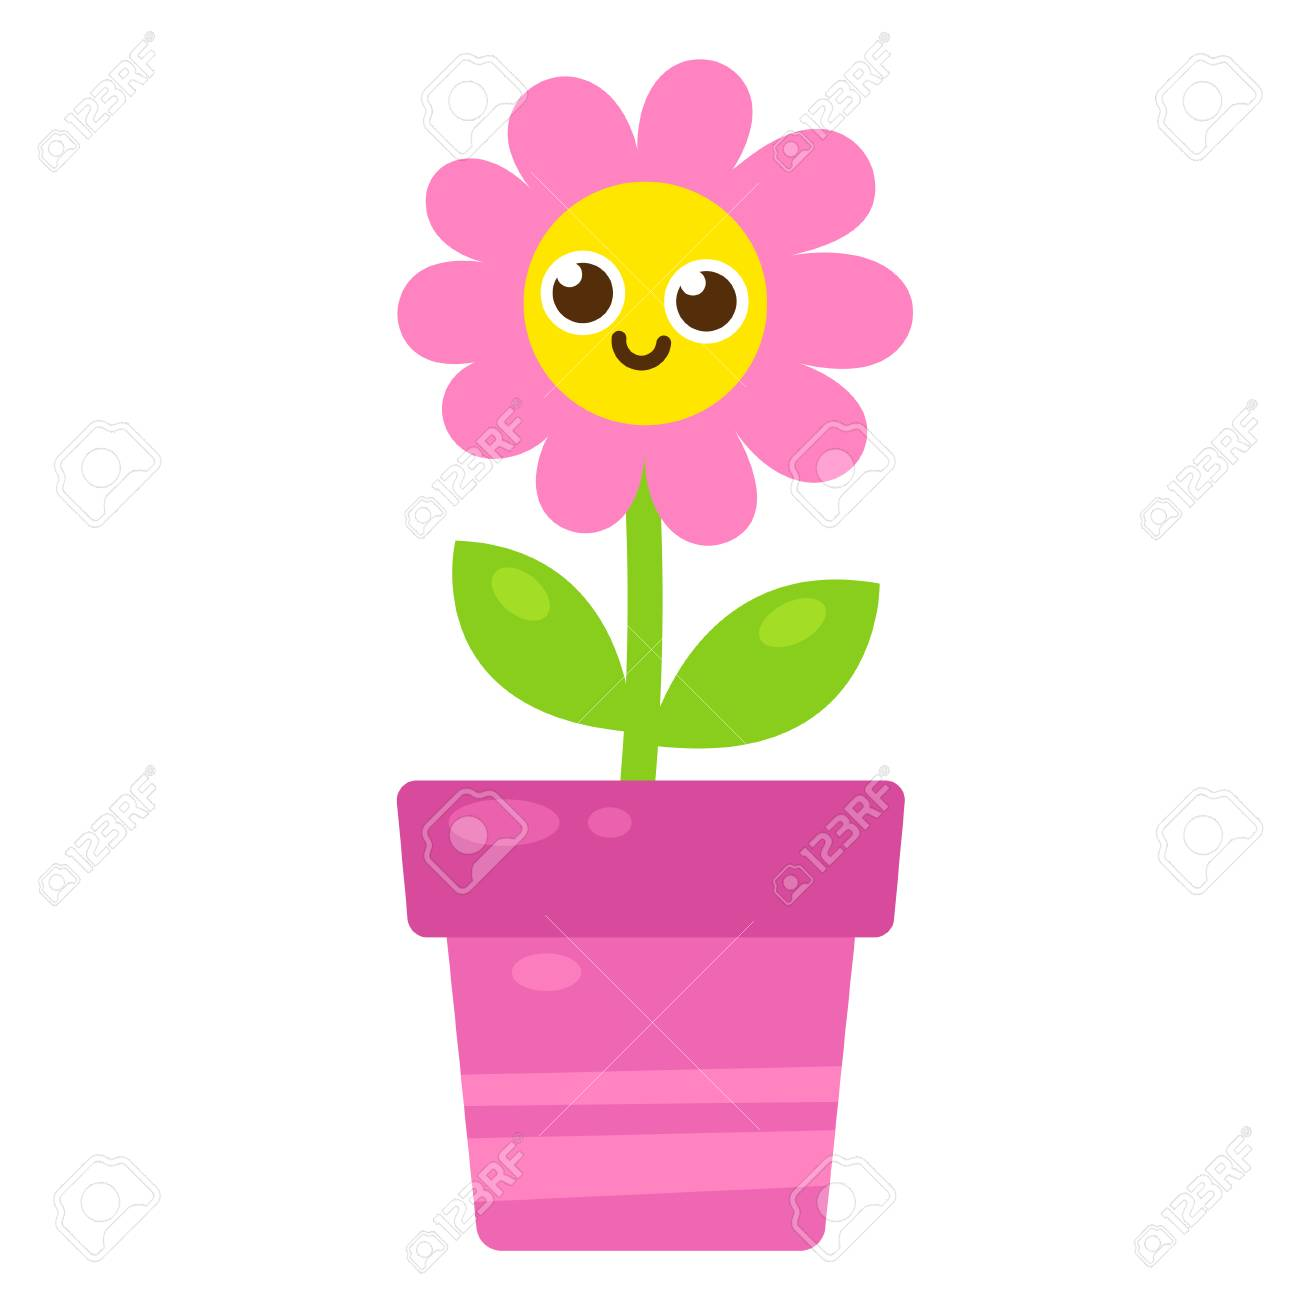 Cute Cartoon Pink Flower With Smiling Face In Flower Pot Vector